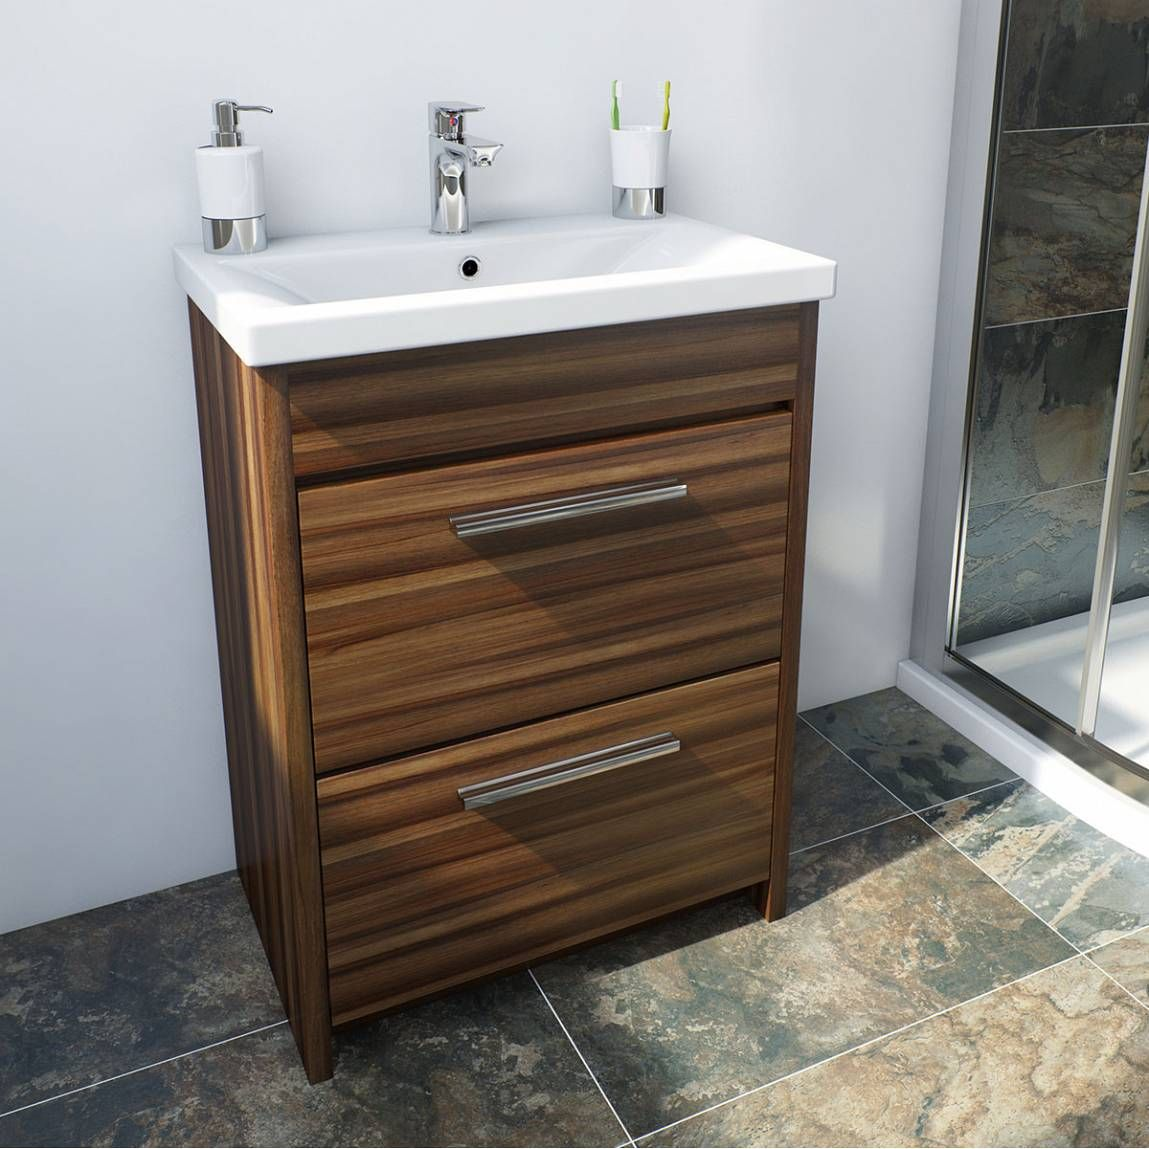 Bathroom Lights Victoria Plumb smart walnut floor mounted 500 drawer unit & basin - victoria